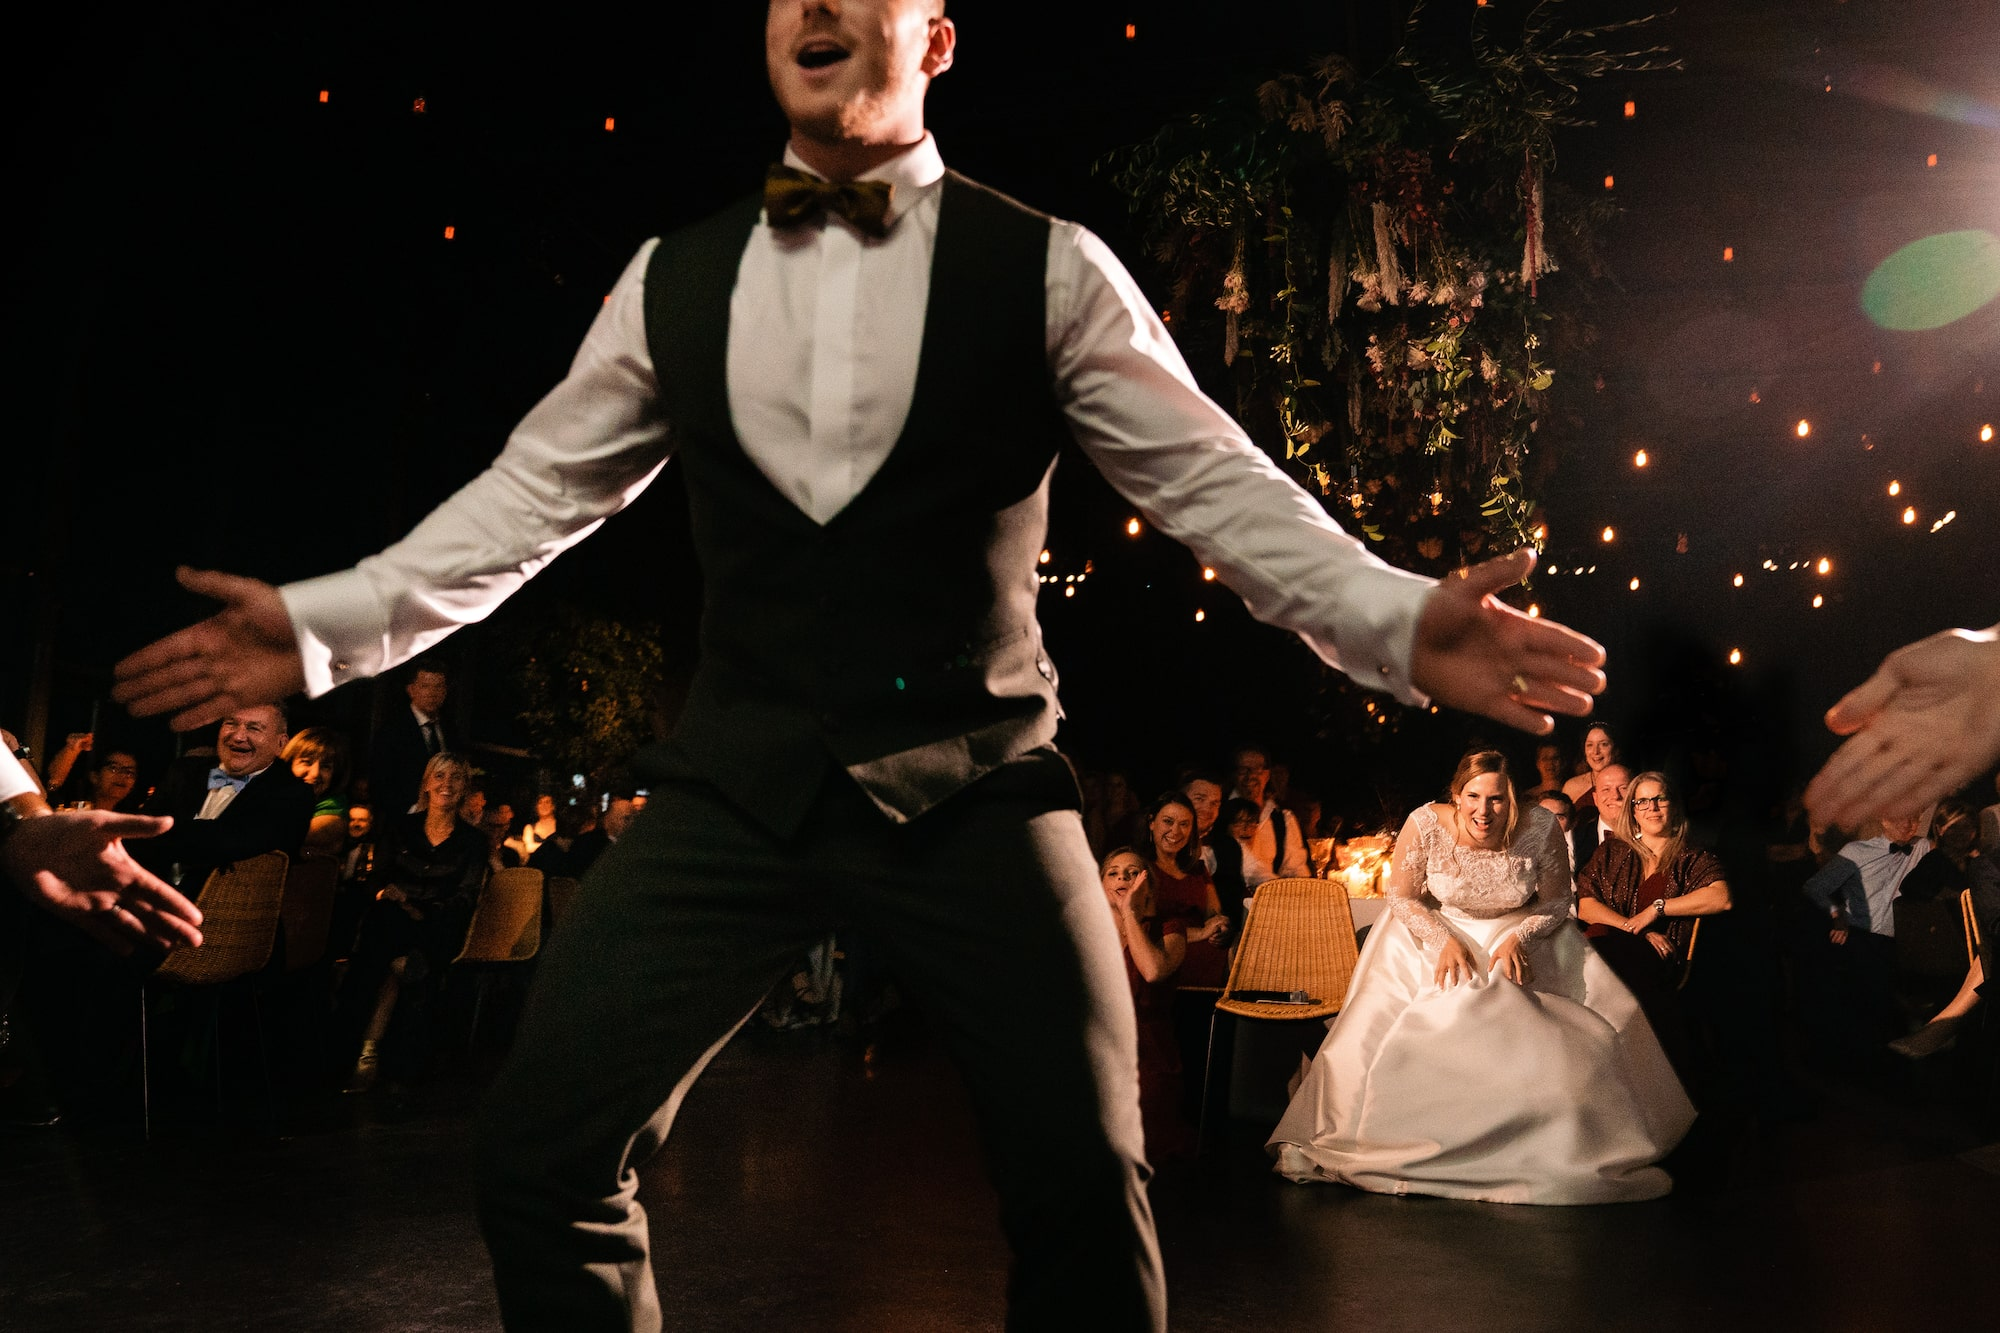 yves schepers sony alpha 9 groom on the dance floor as his bride crouches behind watching him